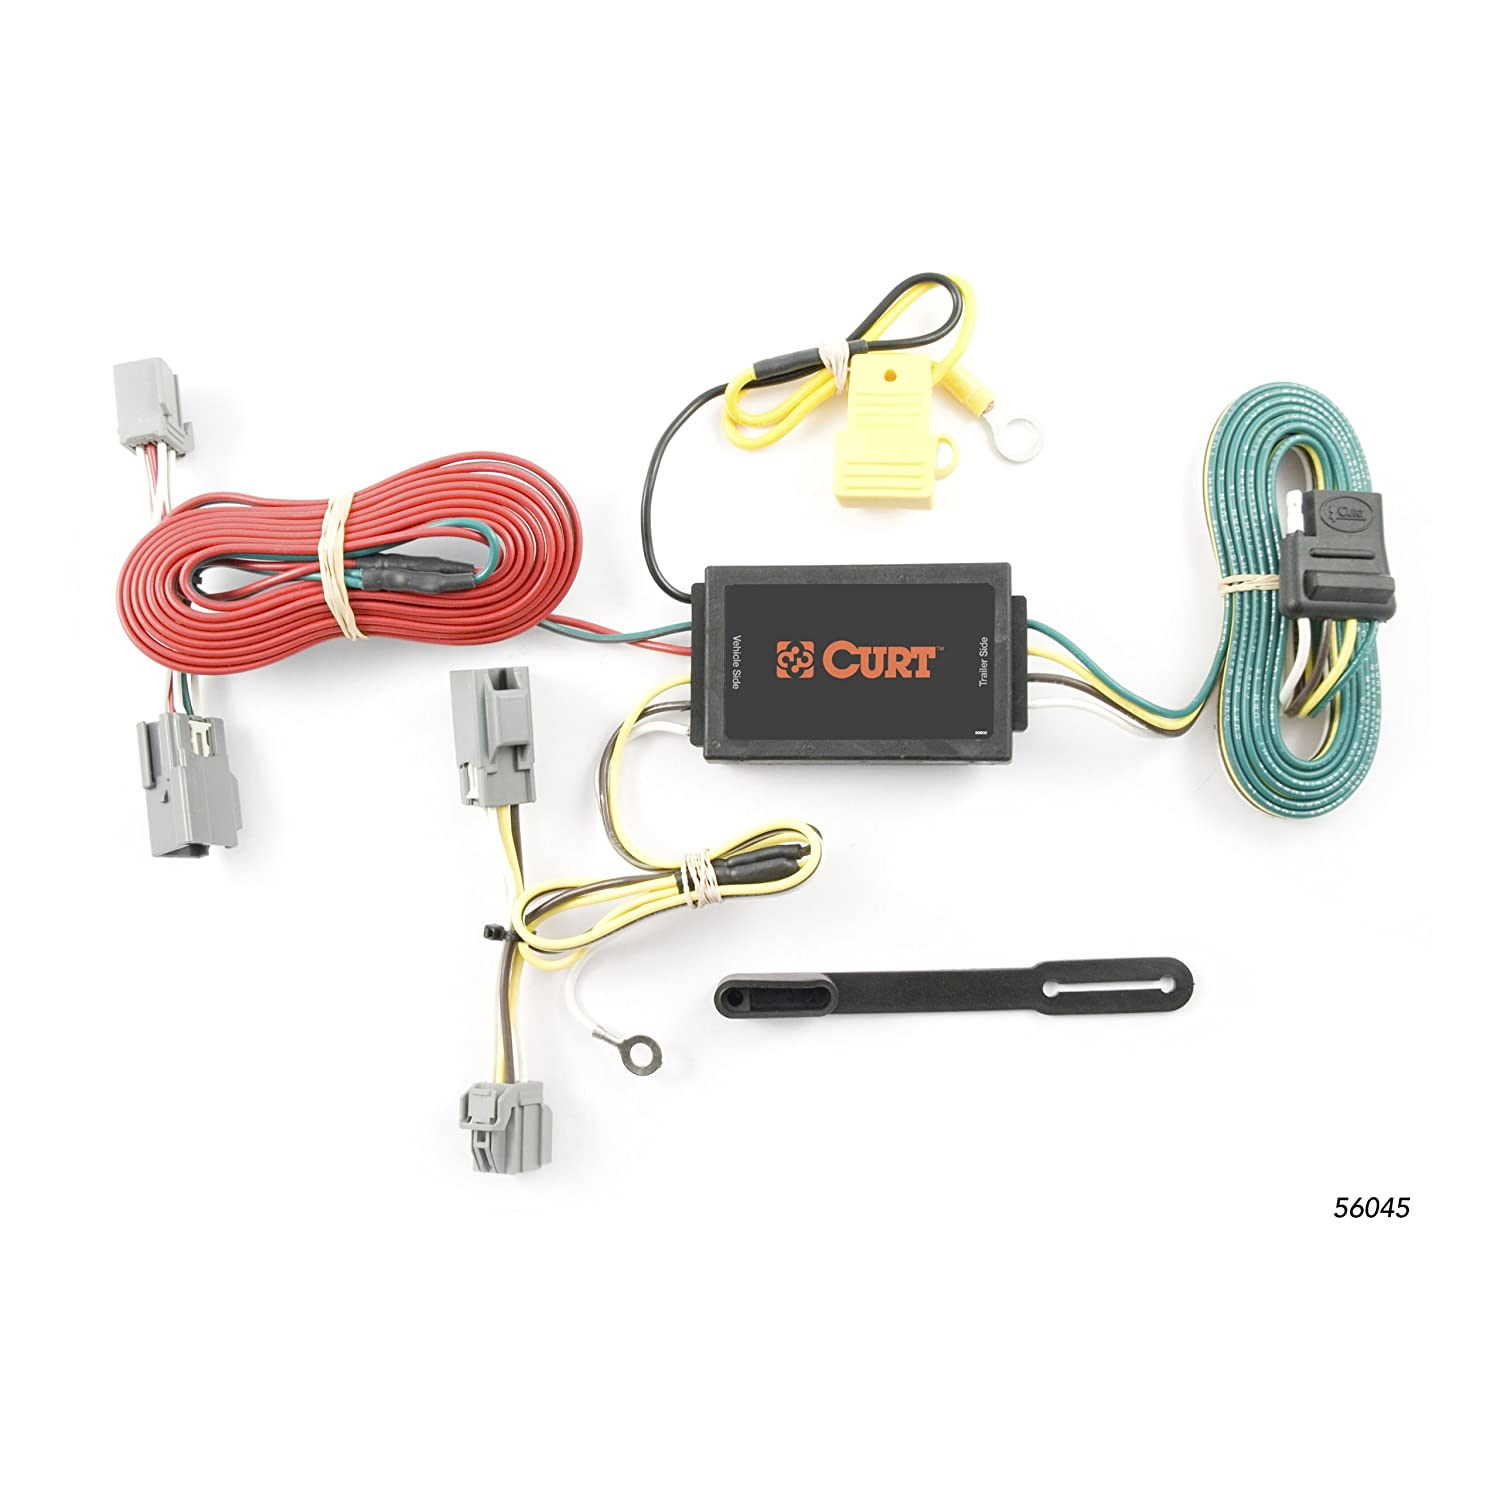 813EHOSzjRL._SL1500_ amazon com curt 56045 custom wiring harness automotive  at cos-gaming.co